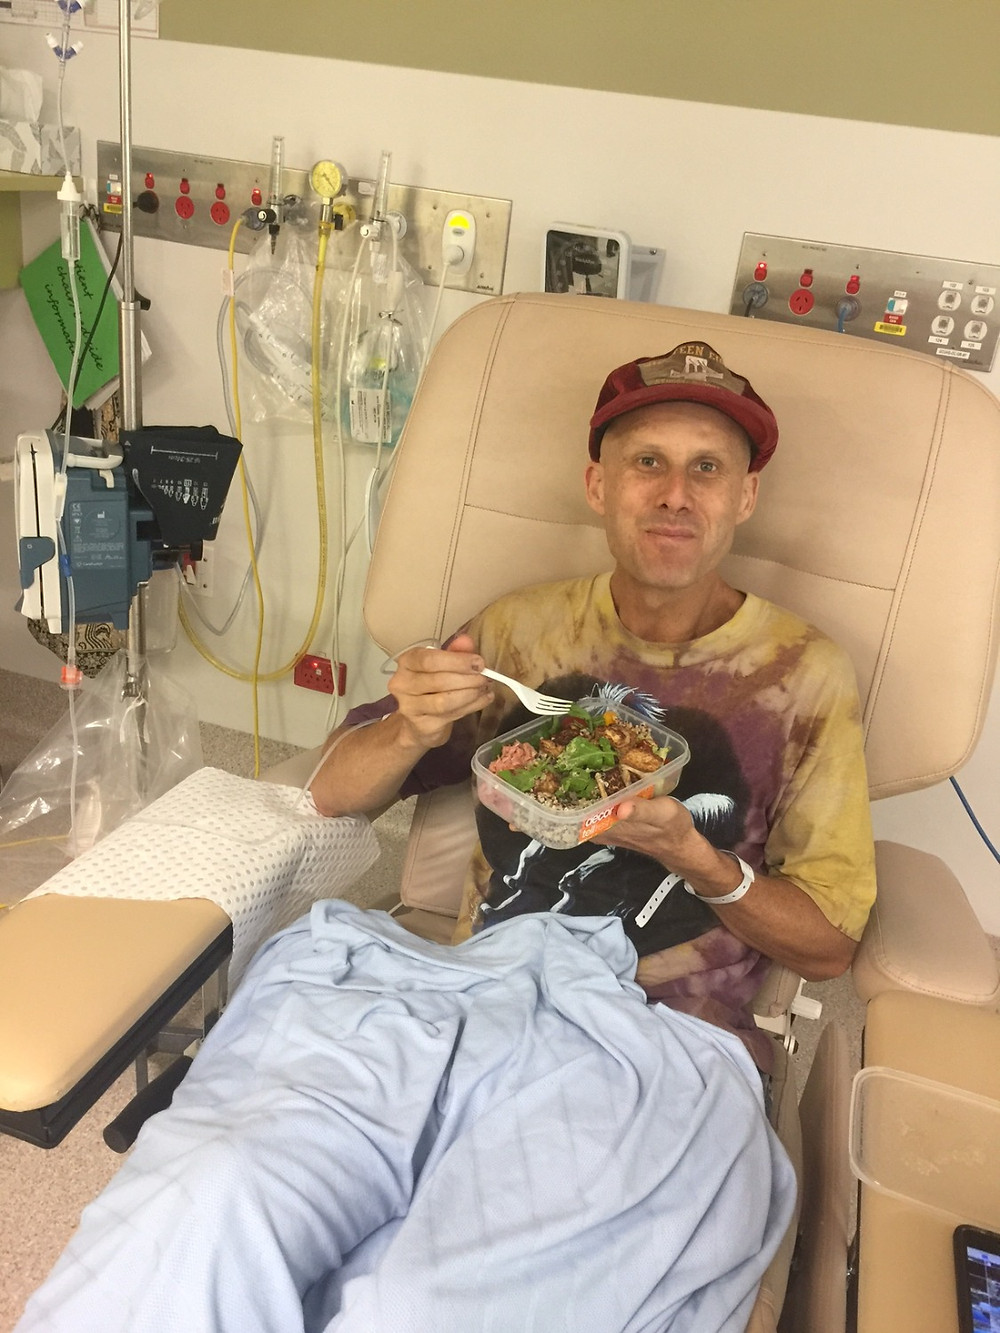 eating a buddah bowl last day of chemo.